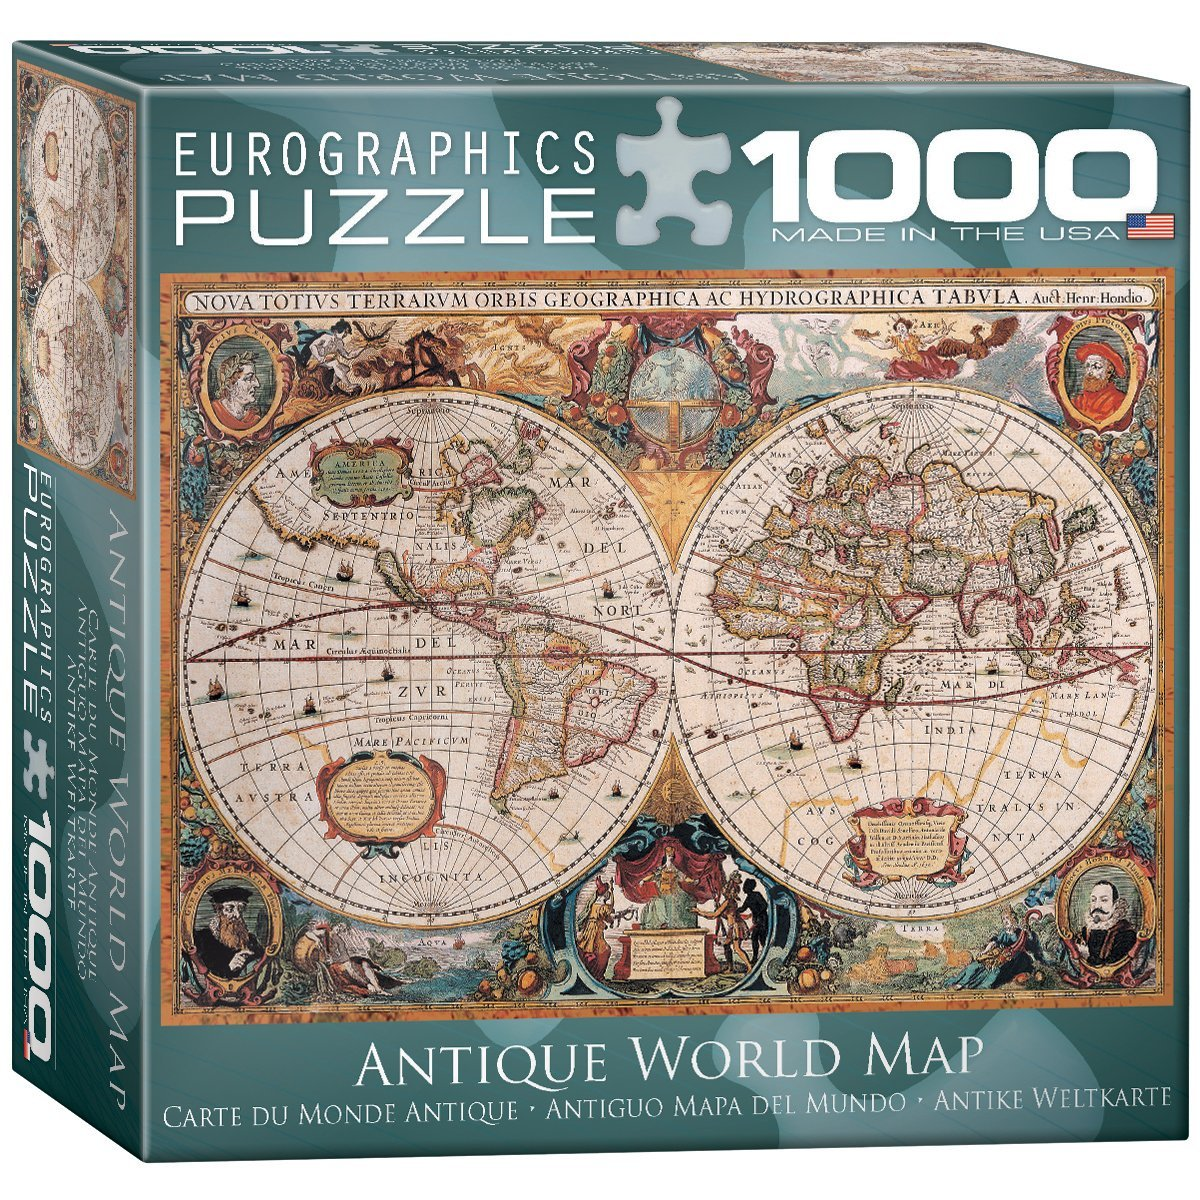 Cheap map game puzzle find map game puzzle deals on line at alibaba get quotations antique world map puzzle 1000 piece gumiabroncs Choice Image